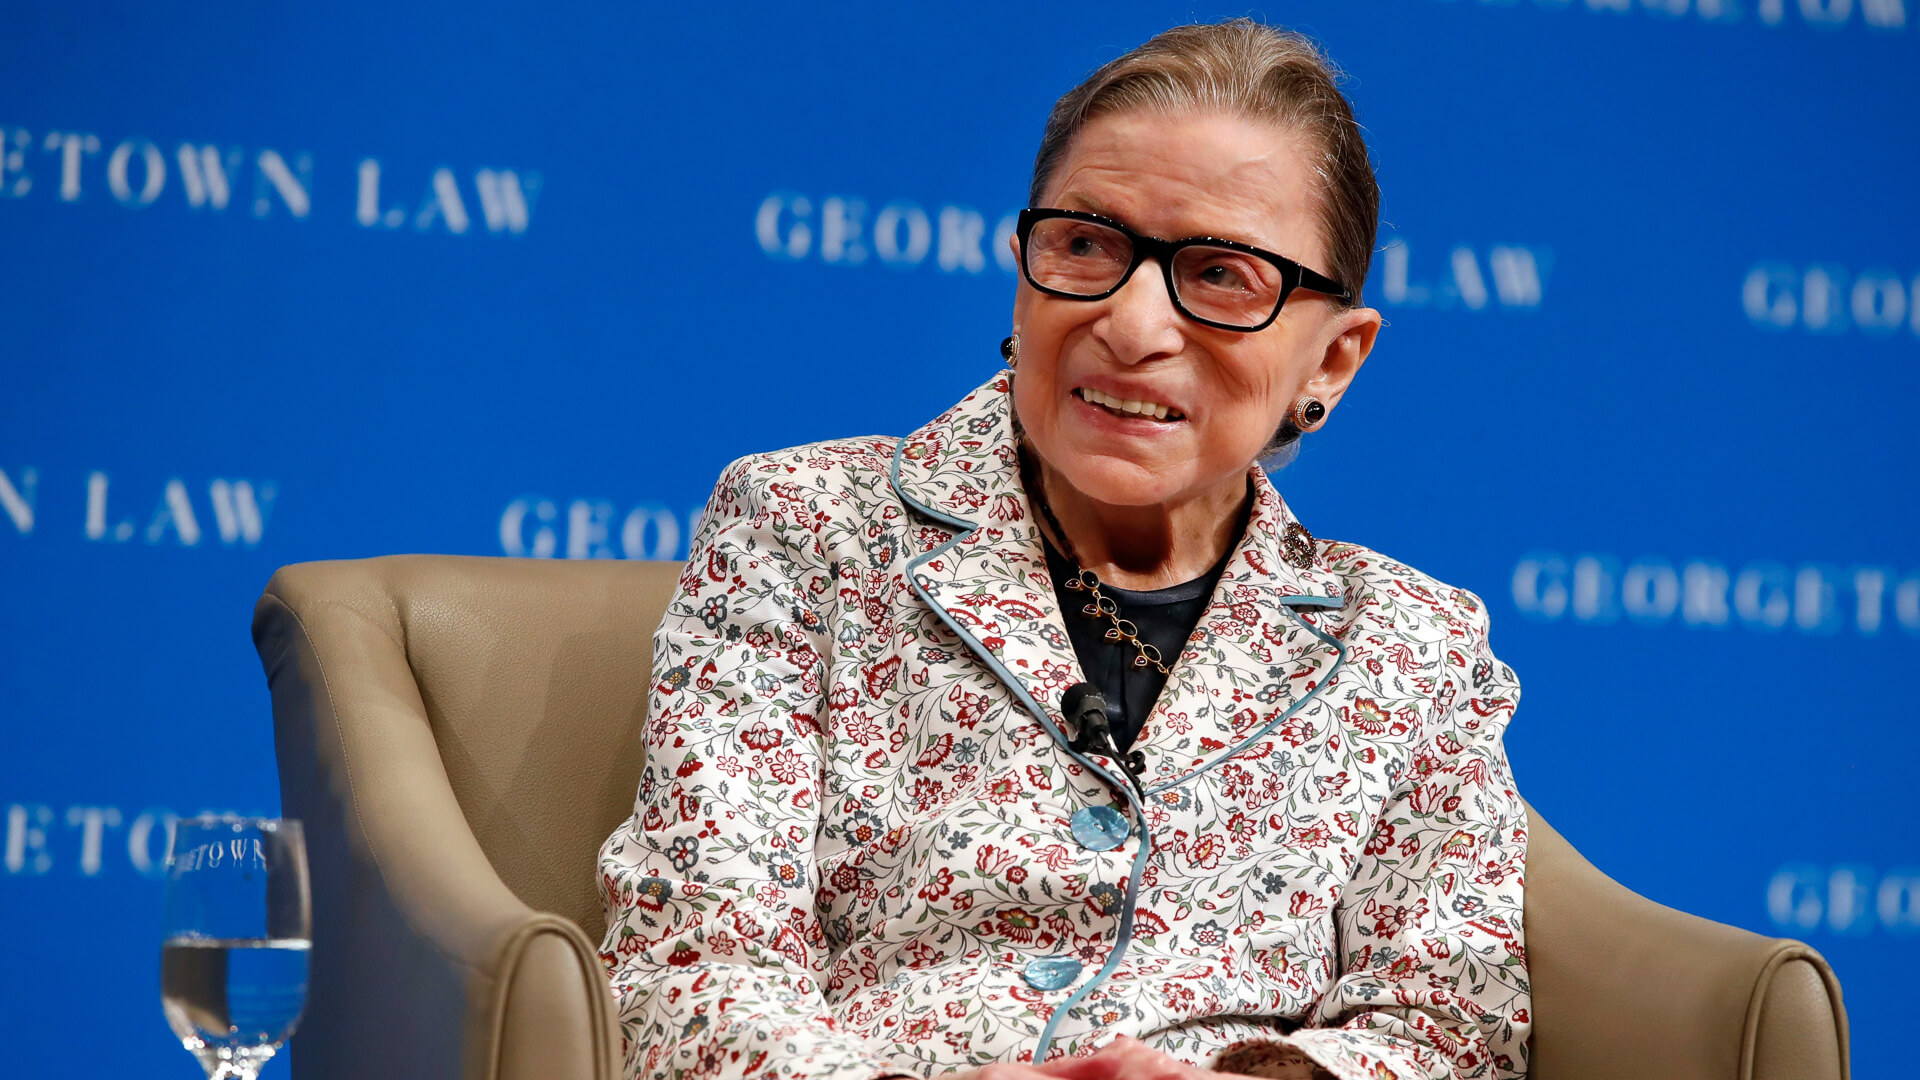 Supreme Court Justice Ruth Bader Ginsburg on stage during interview